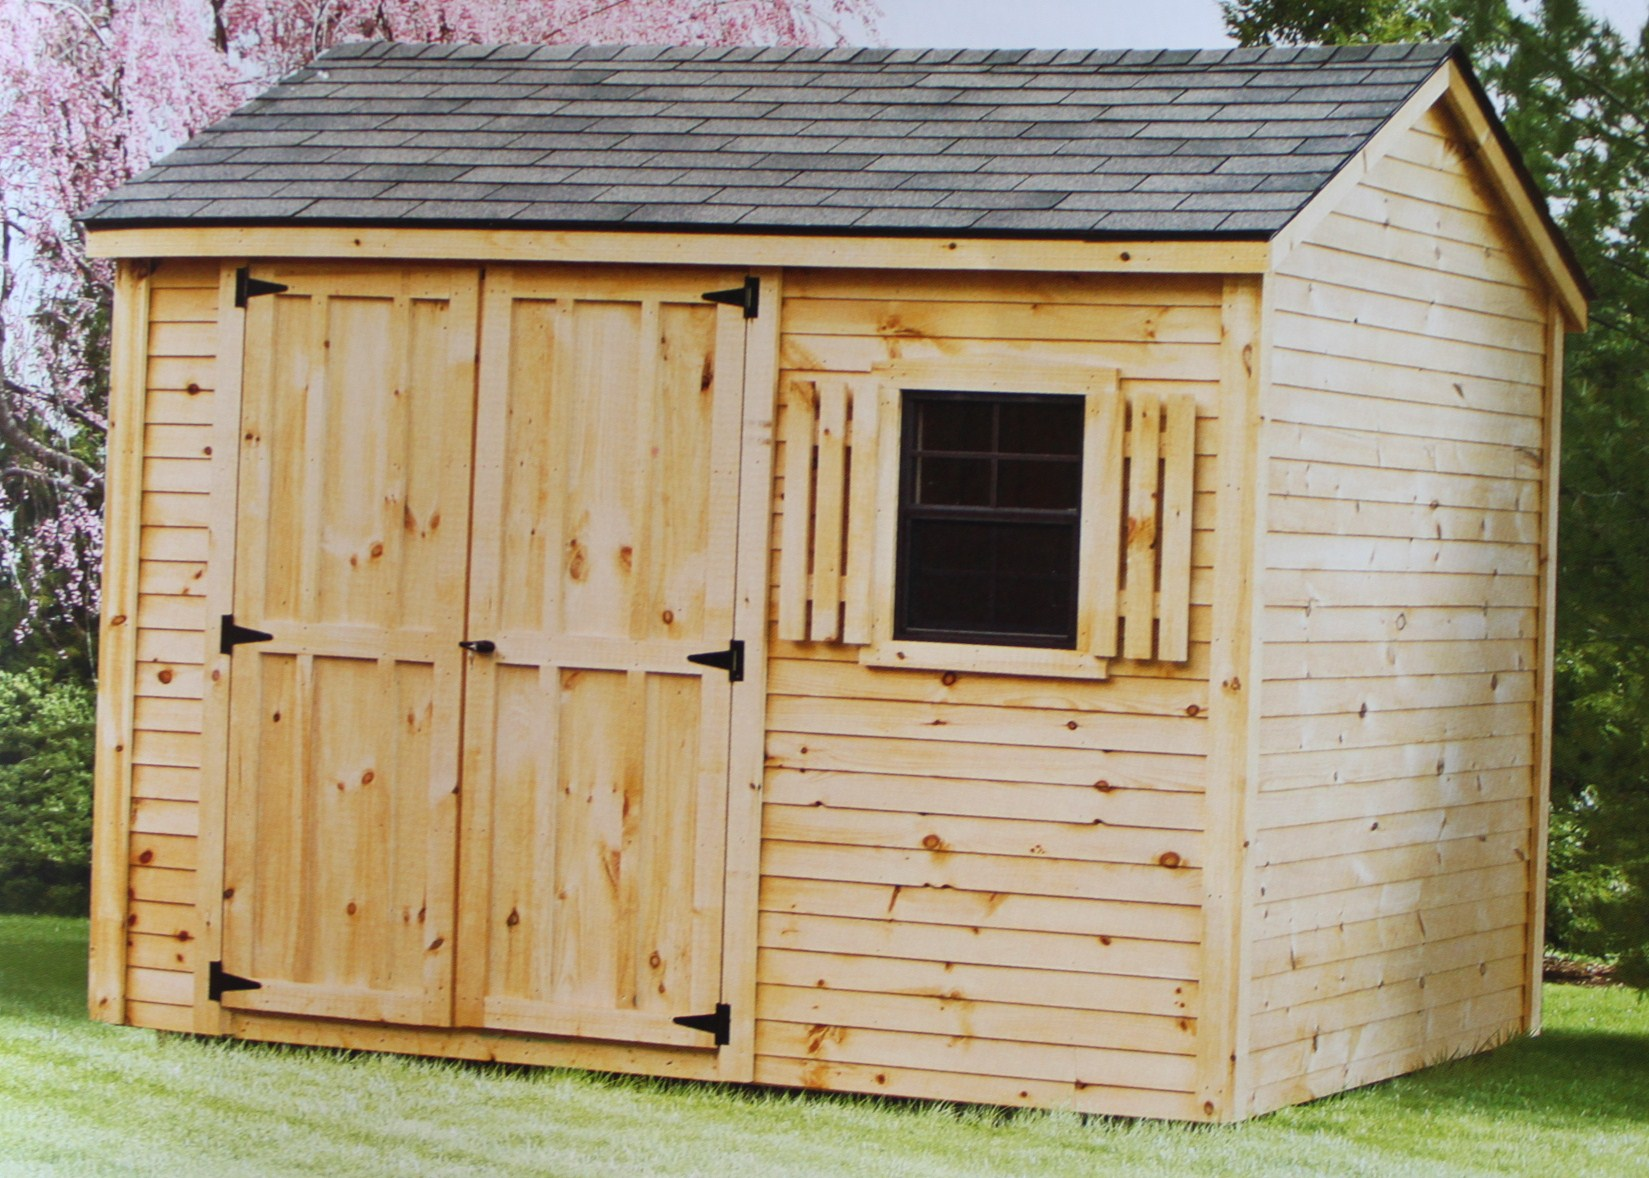 Storage Sheds 1 2 Car Garages Playhouses Board And